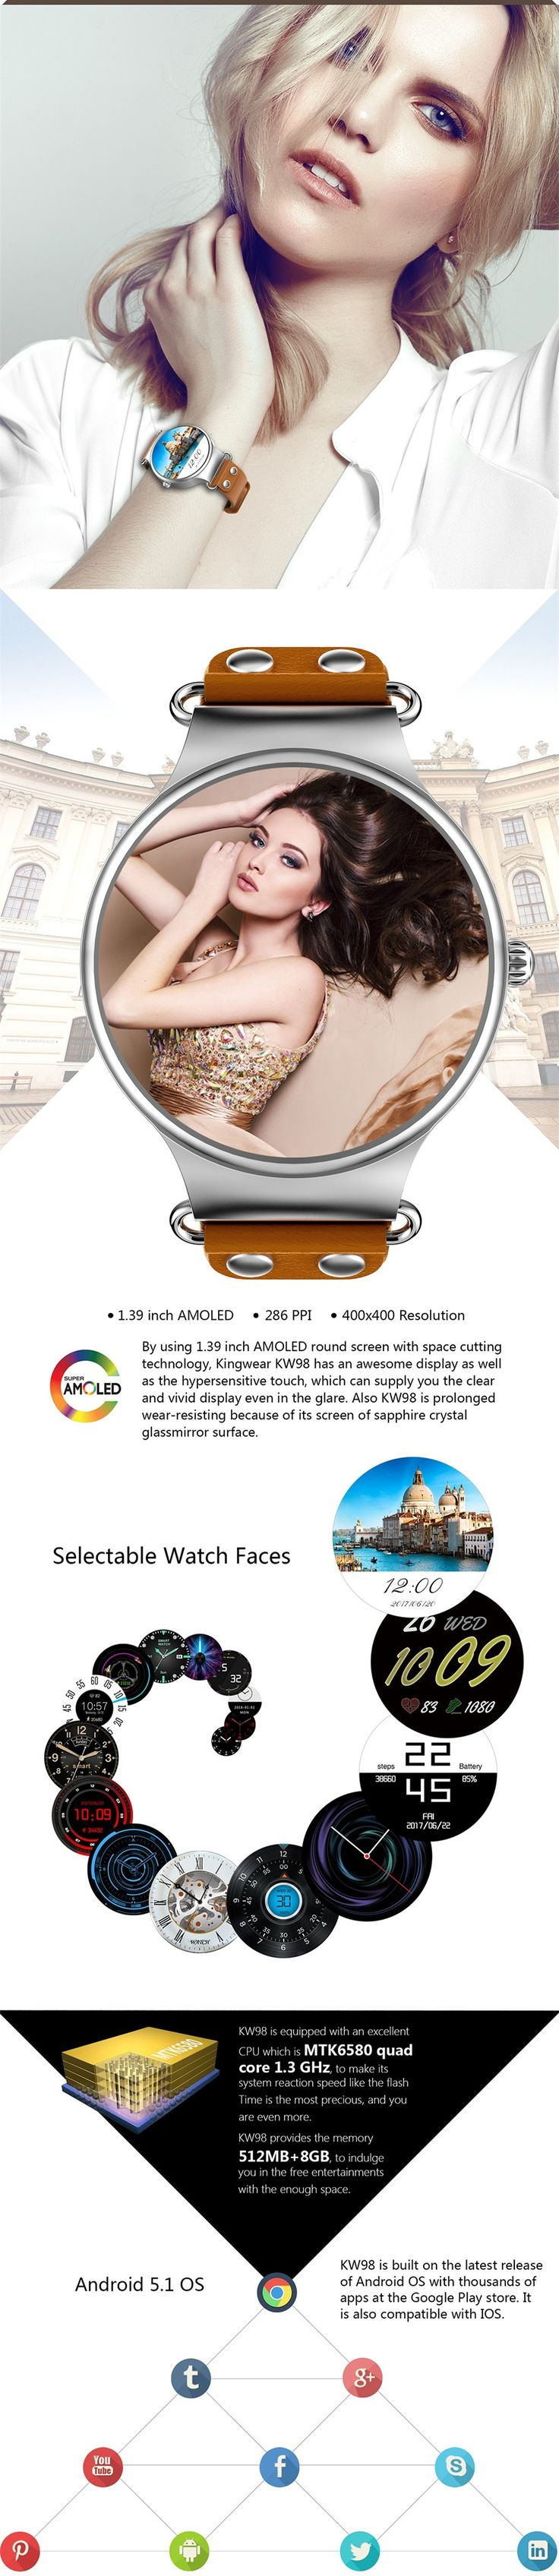 KINGWEAR KW98 MTK6580 1.39 Inch AMOLED HD 8GB WiFi GPS Heart Rate Android 5.1 Smart Watch Phone  #smartphones #cellphones #tablet #computer #technology #accessories #smartwatch